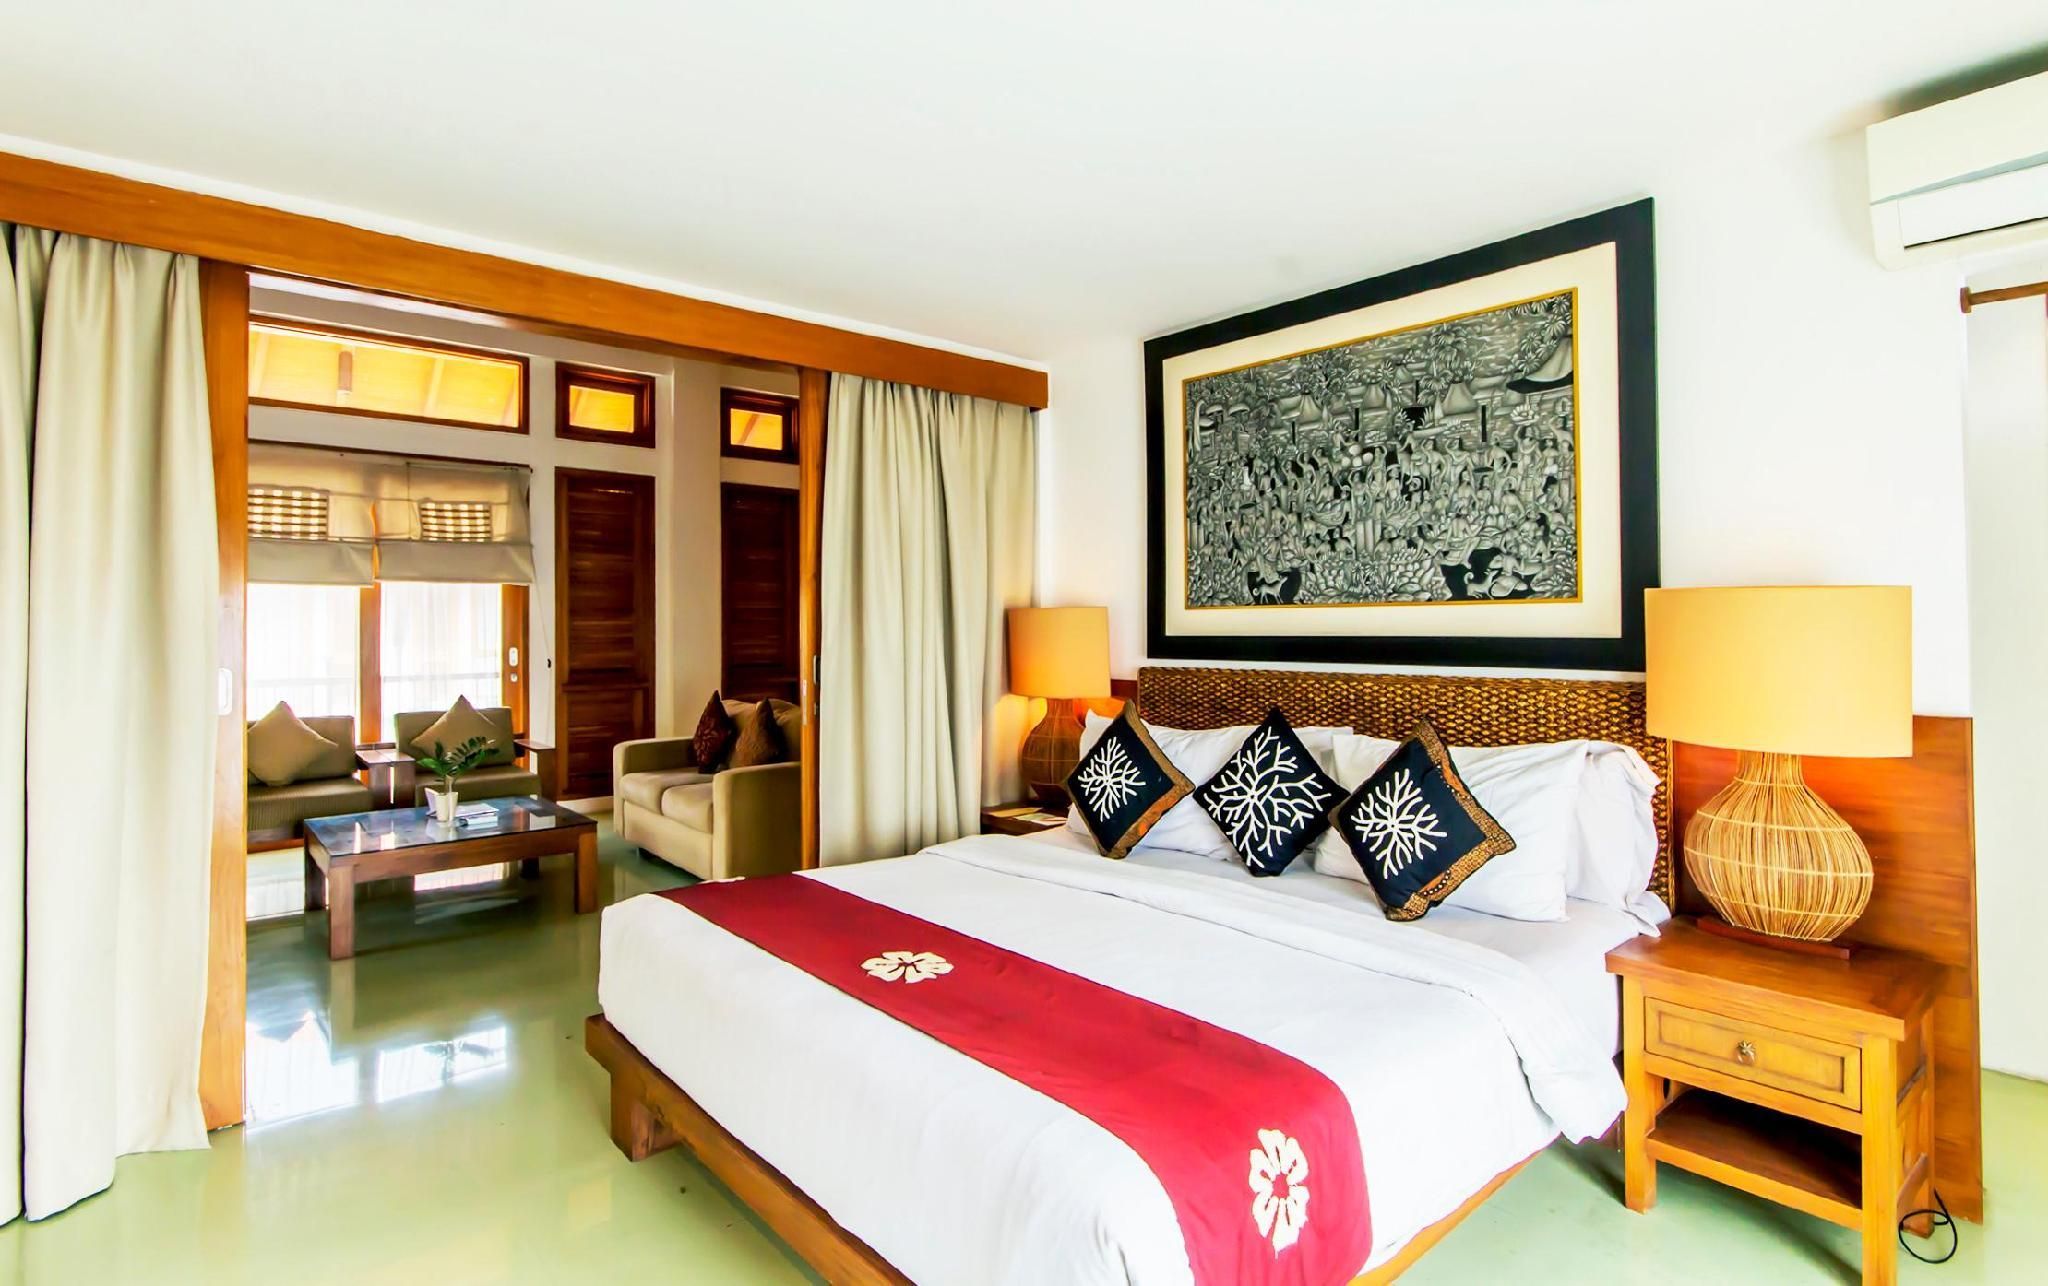 Suite Tower dengan Sarapan untuk 4 Orang (Tower Suite with Breakfast for 4 persons)